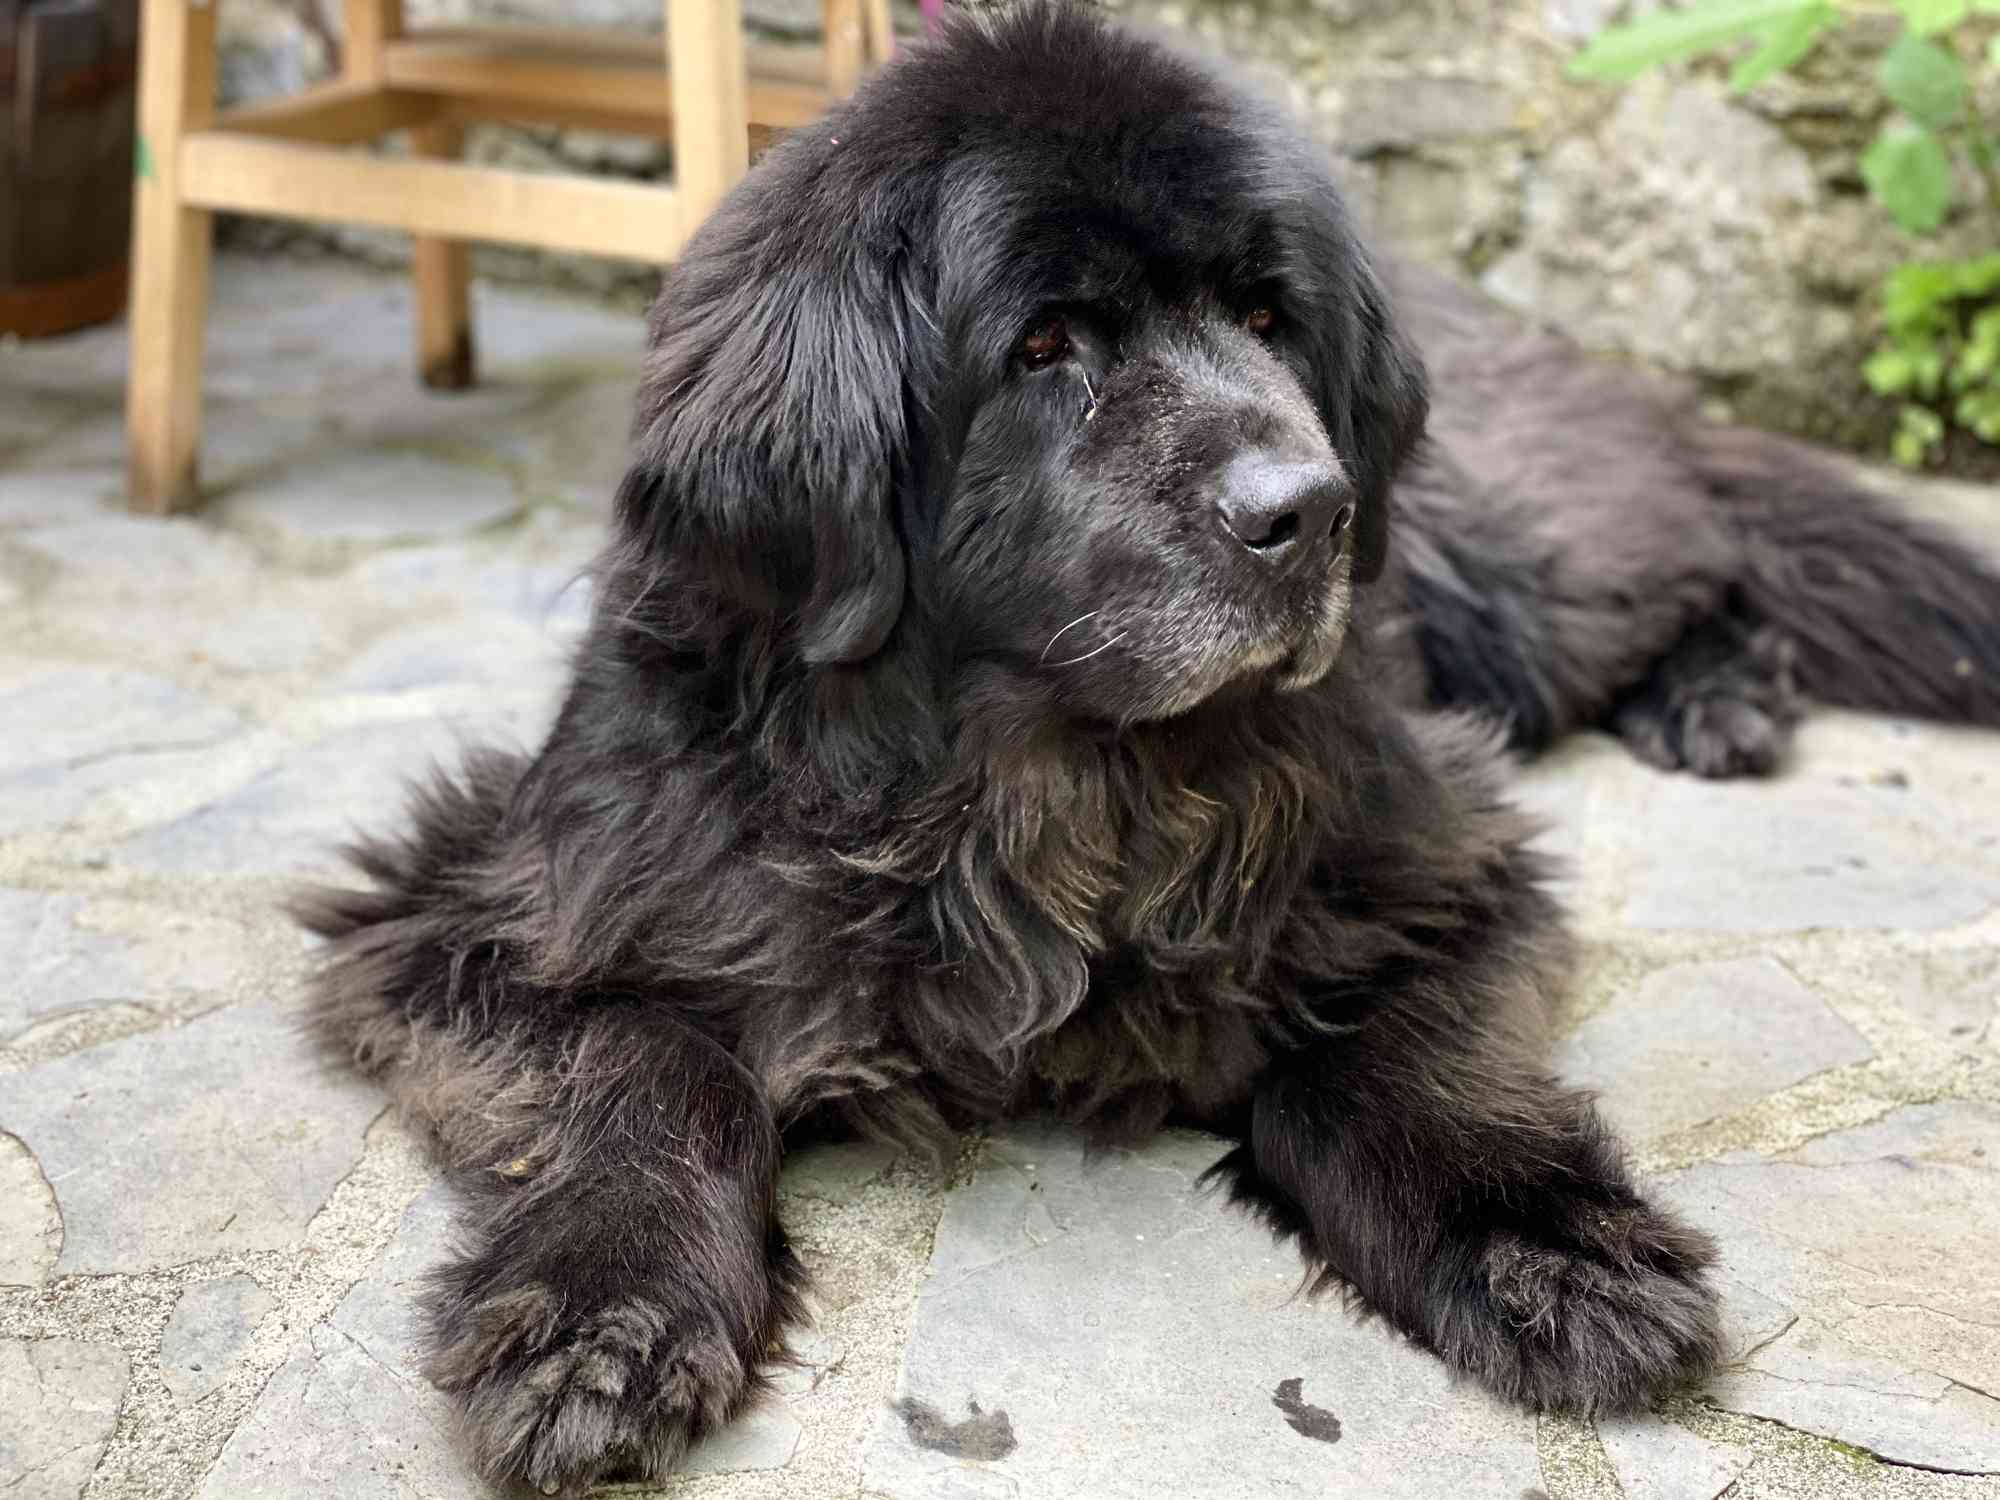 Black Newfoundland dog on the ground with its front paws outstretched